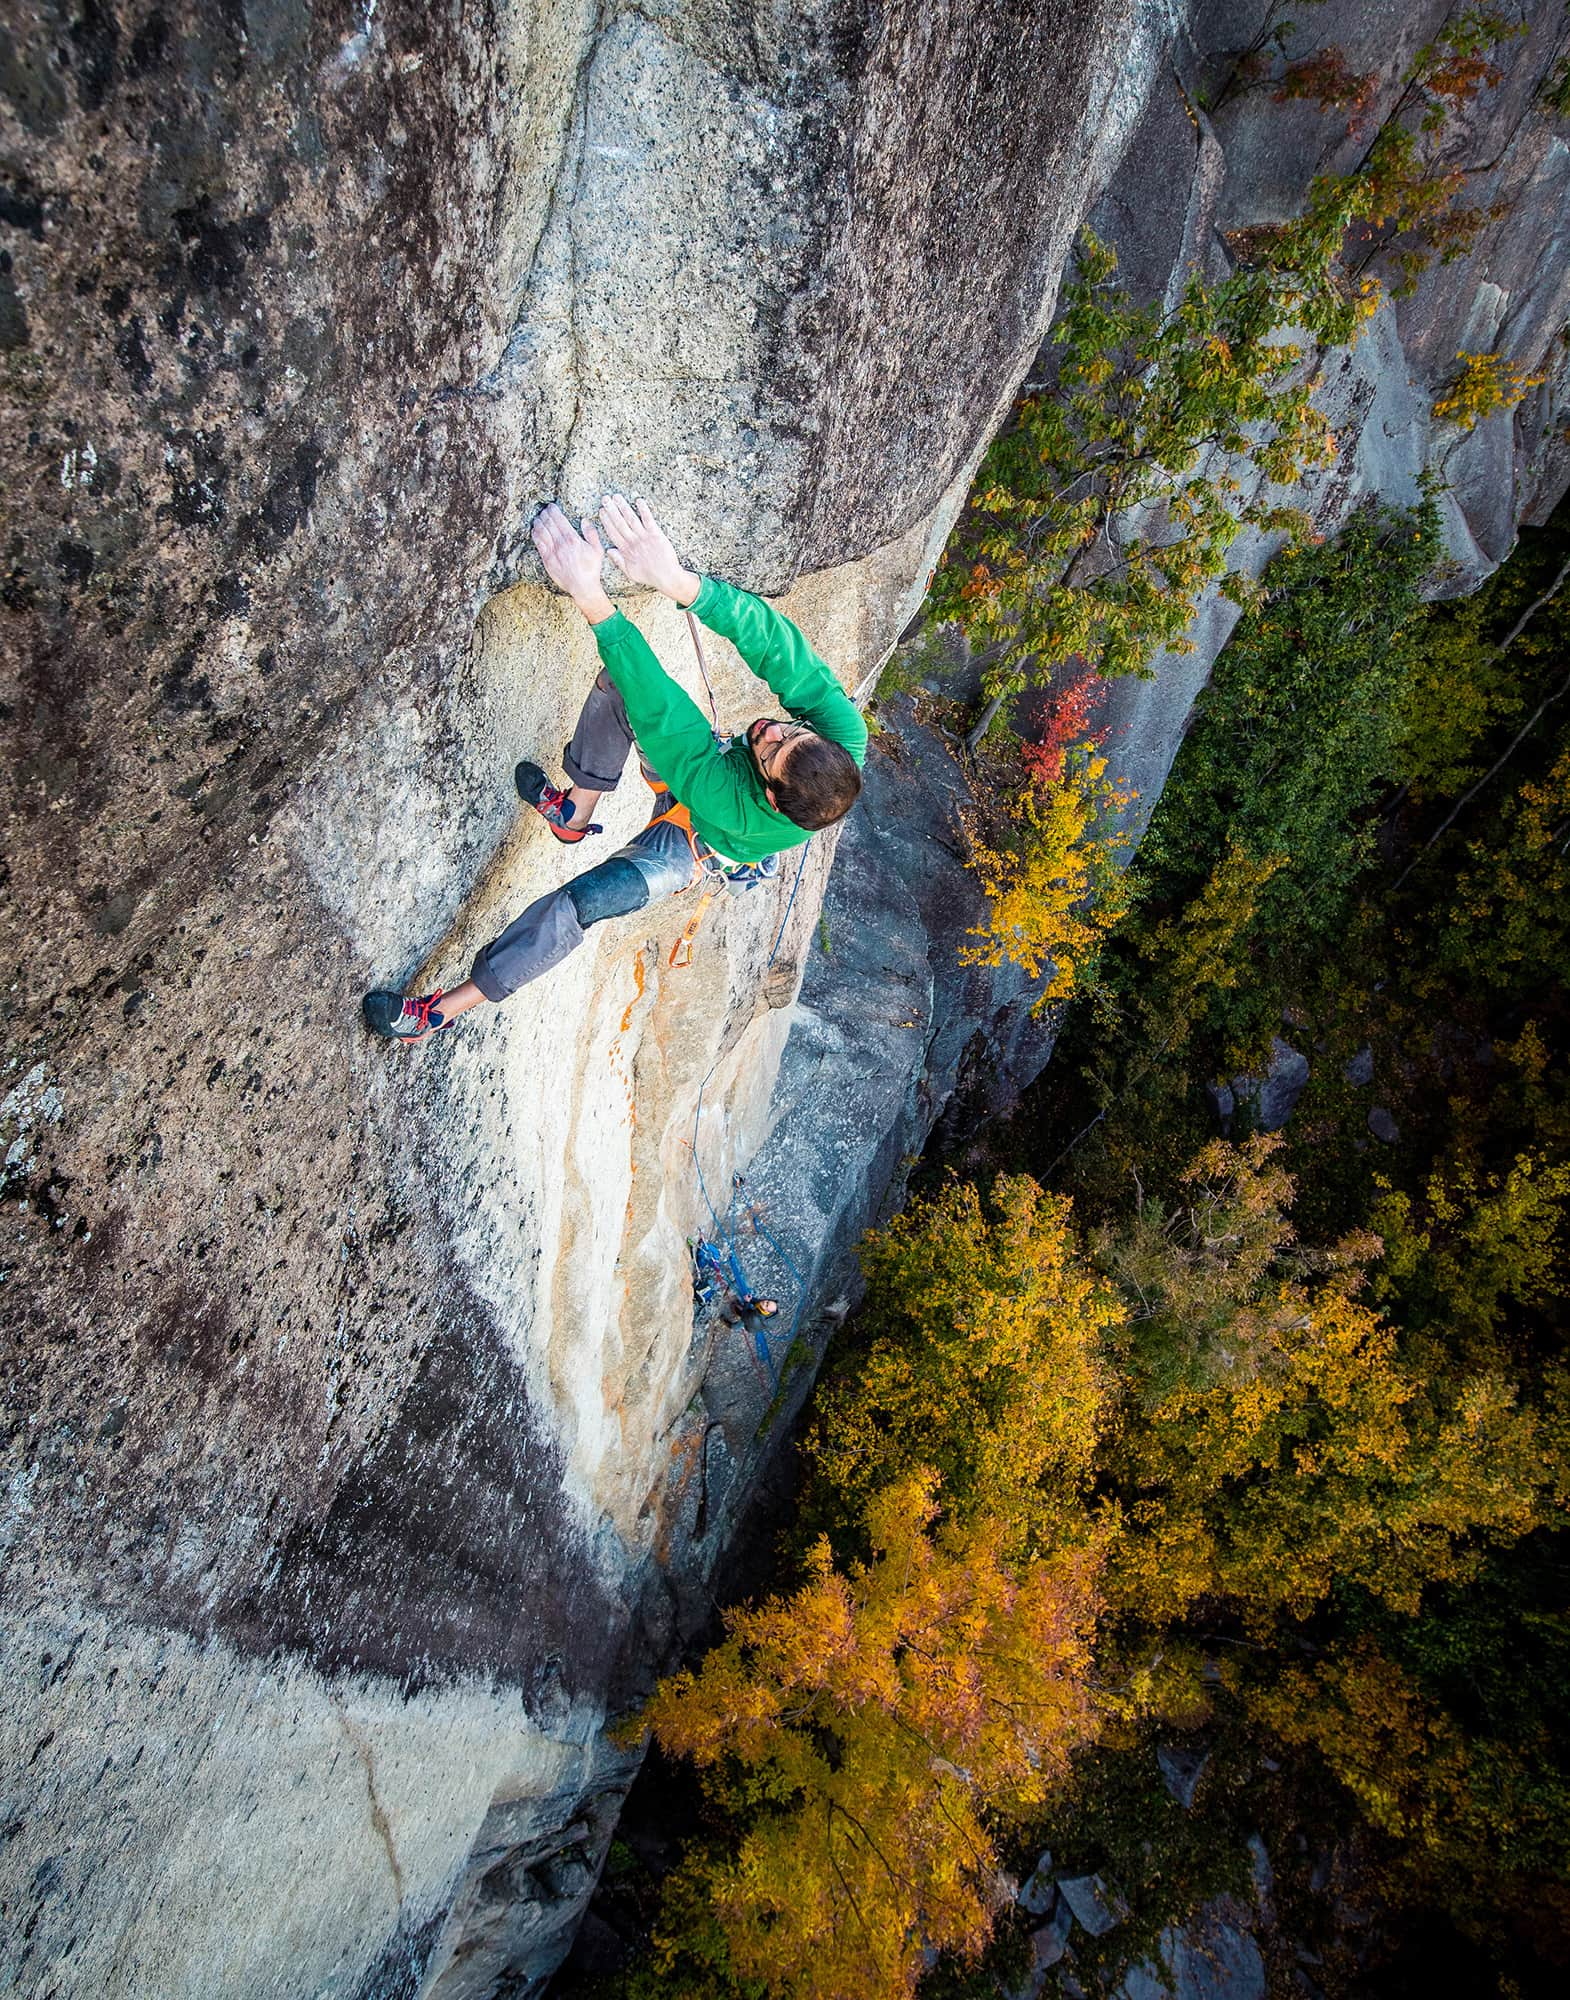 """Jay below the mantel crux  on pitch two (5.14a). """"Pitch one is really tech, with tons of V4 - V6 moves,"""" he says. """"You get to wear kneepads on both knees on Cathedral.... So, that's fun."""" Photo: Brent Doscher"""